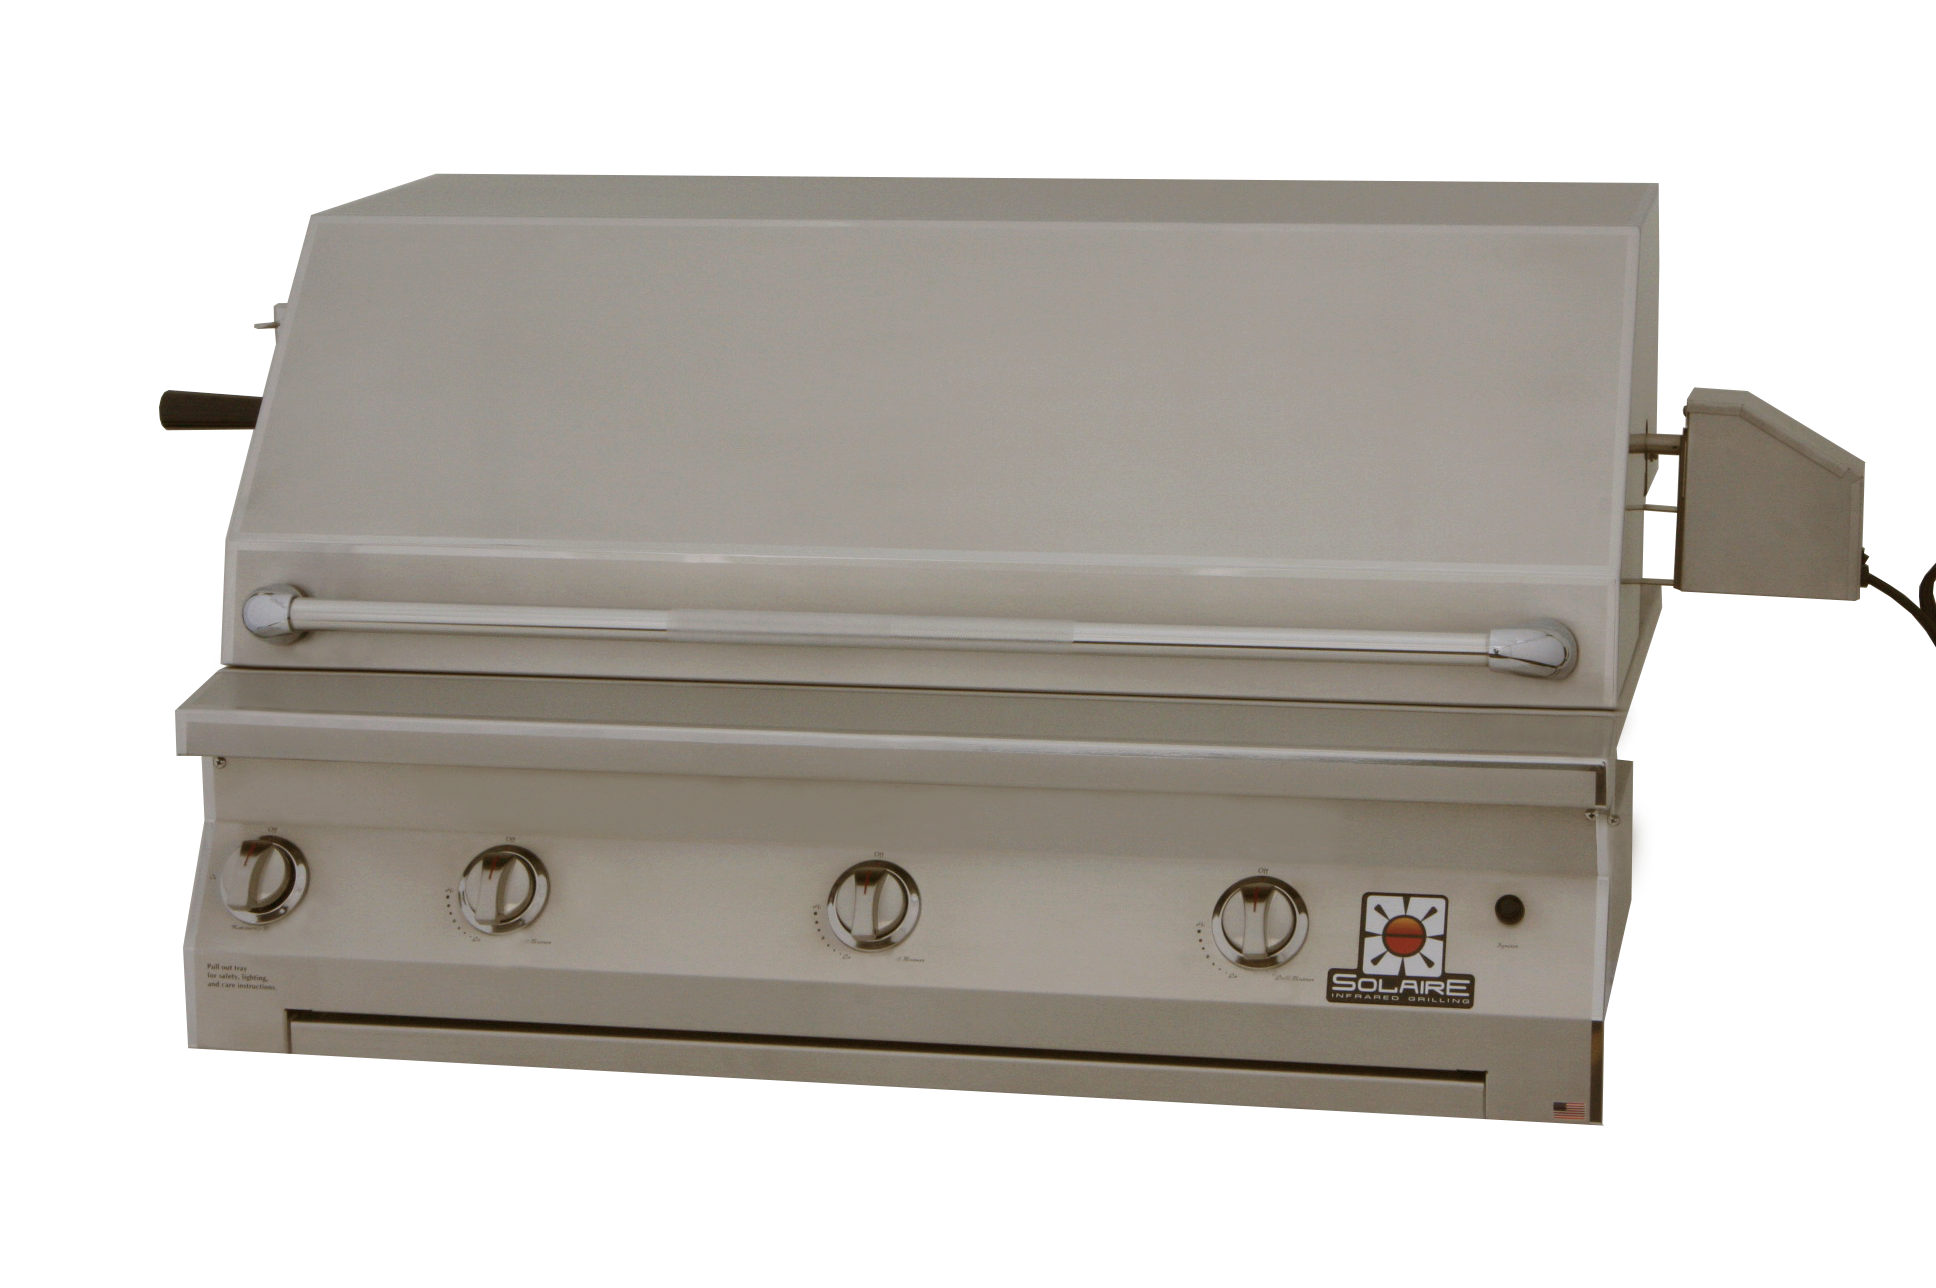 Solaire AGBQ-42 Built-in Grill